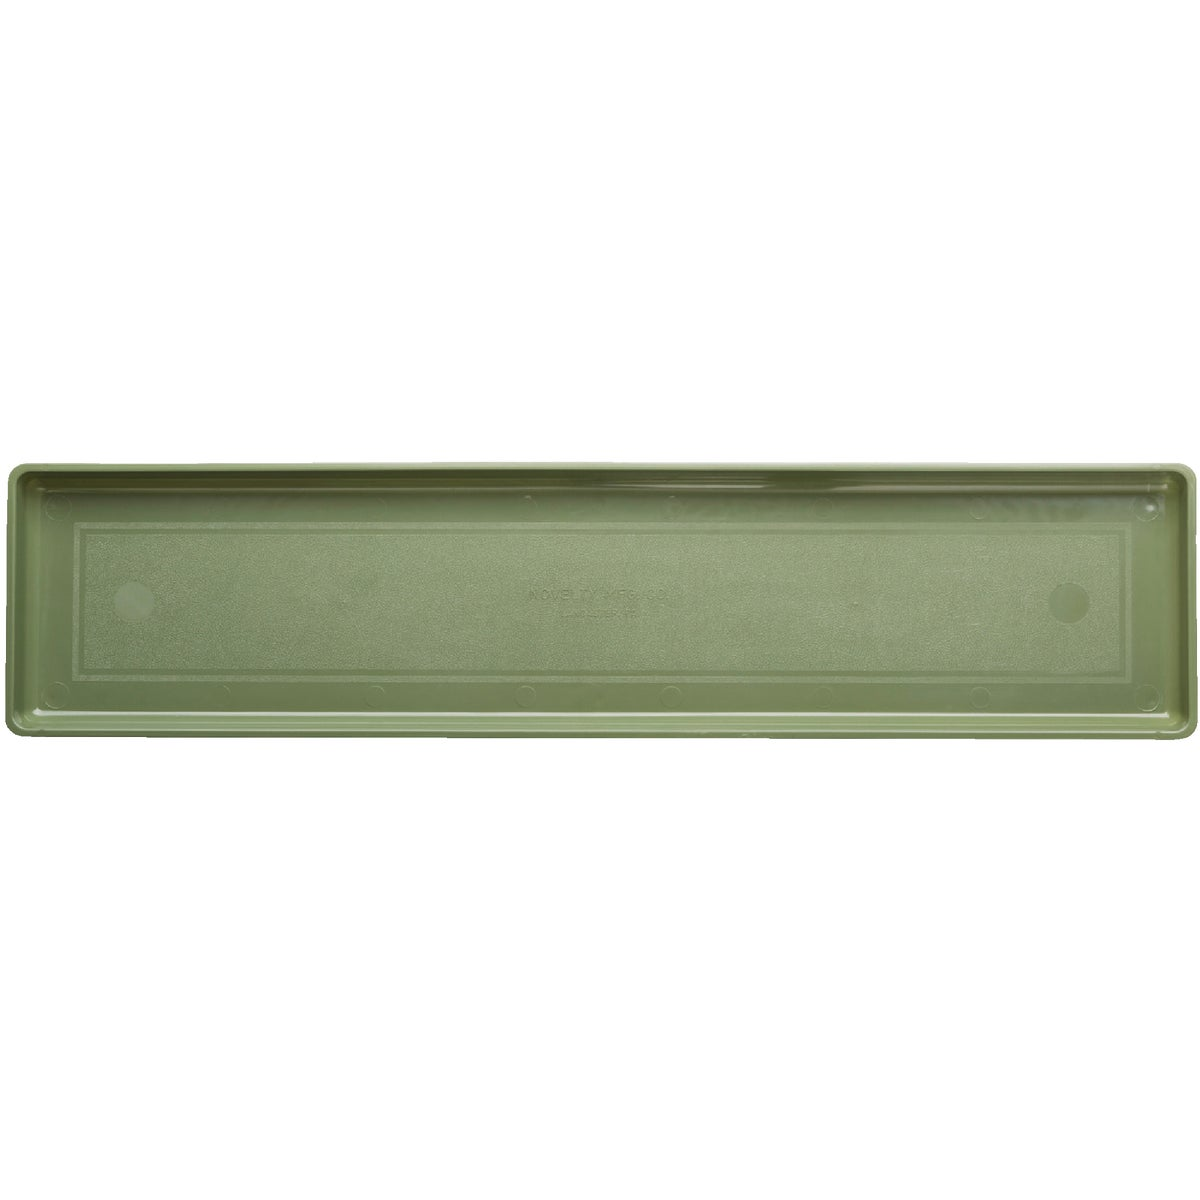 PLASTIC FLOWER BOX TRAY - 1030 by Novelty Mfg Co